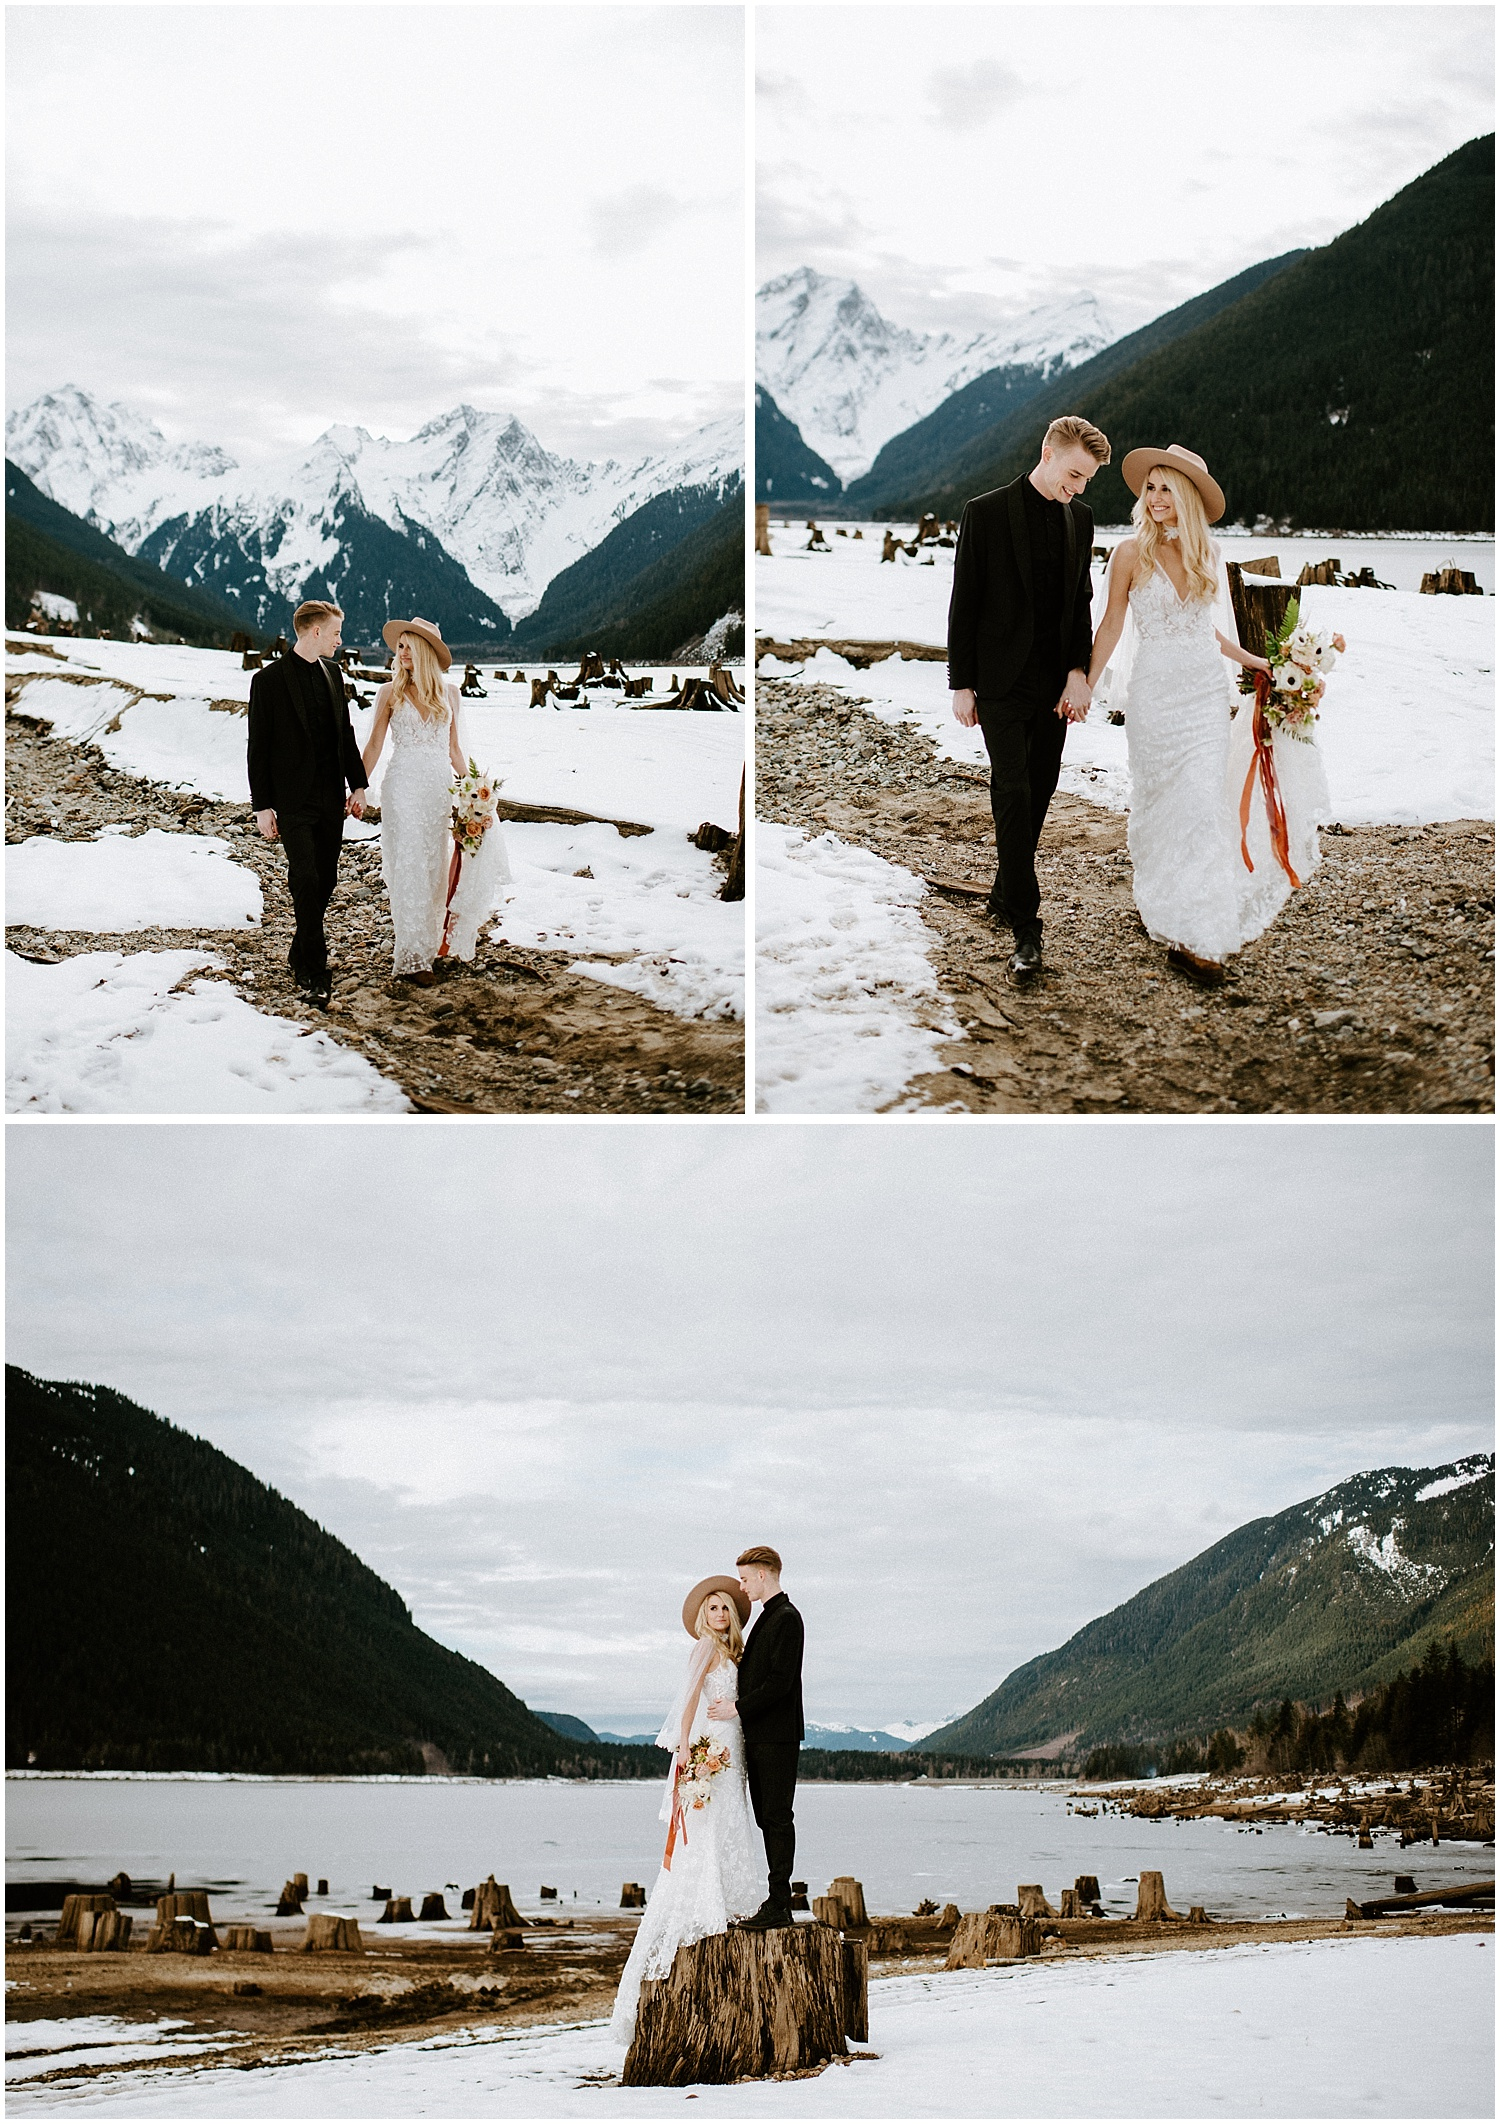 Jones_Lake_wedding_winter_elopement_vancouver_photographer_0254.jpg